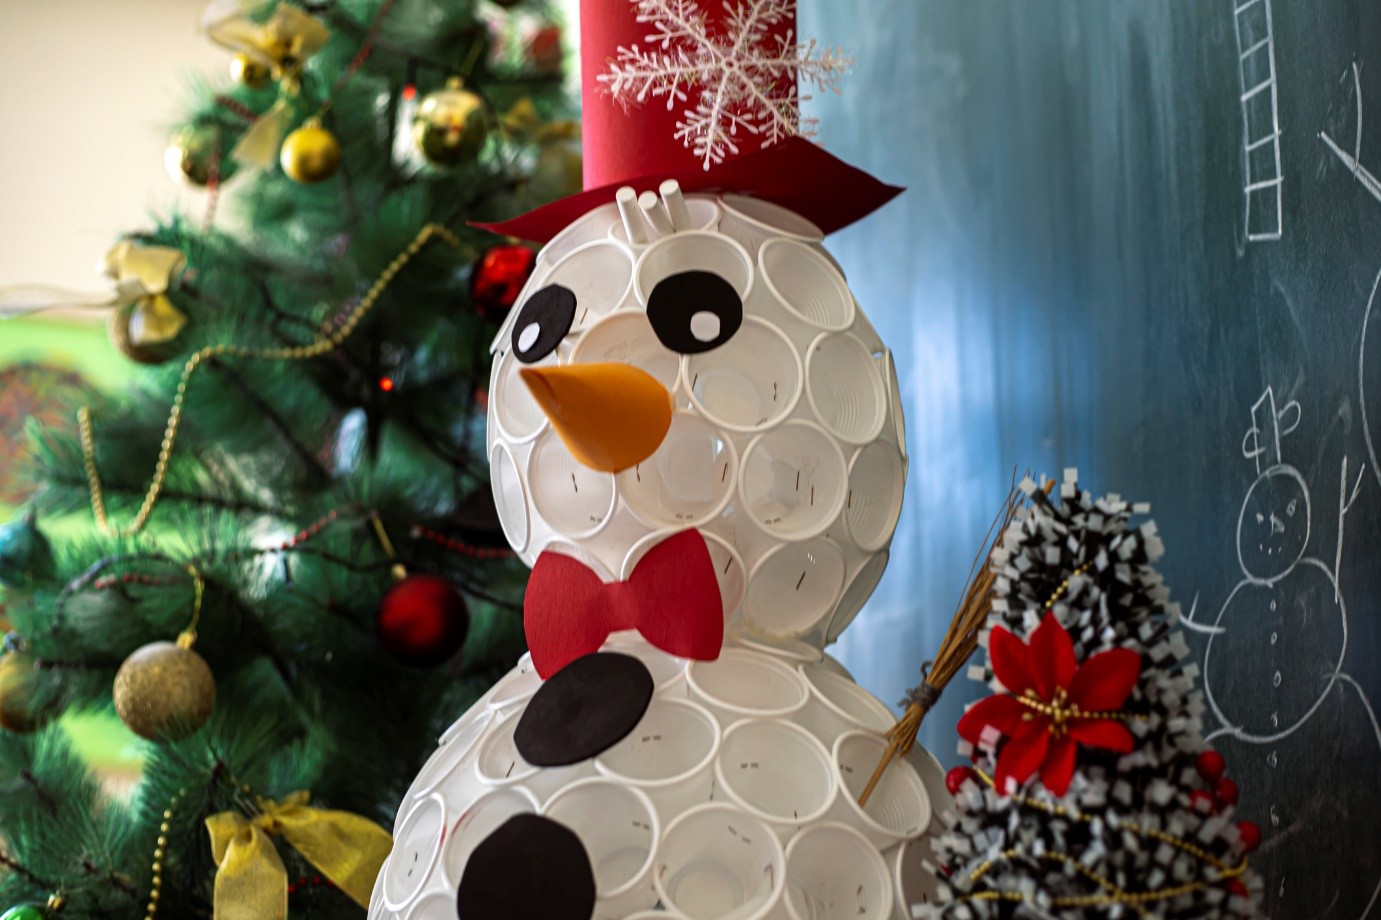 homemade snowman with cups